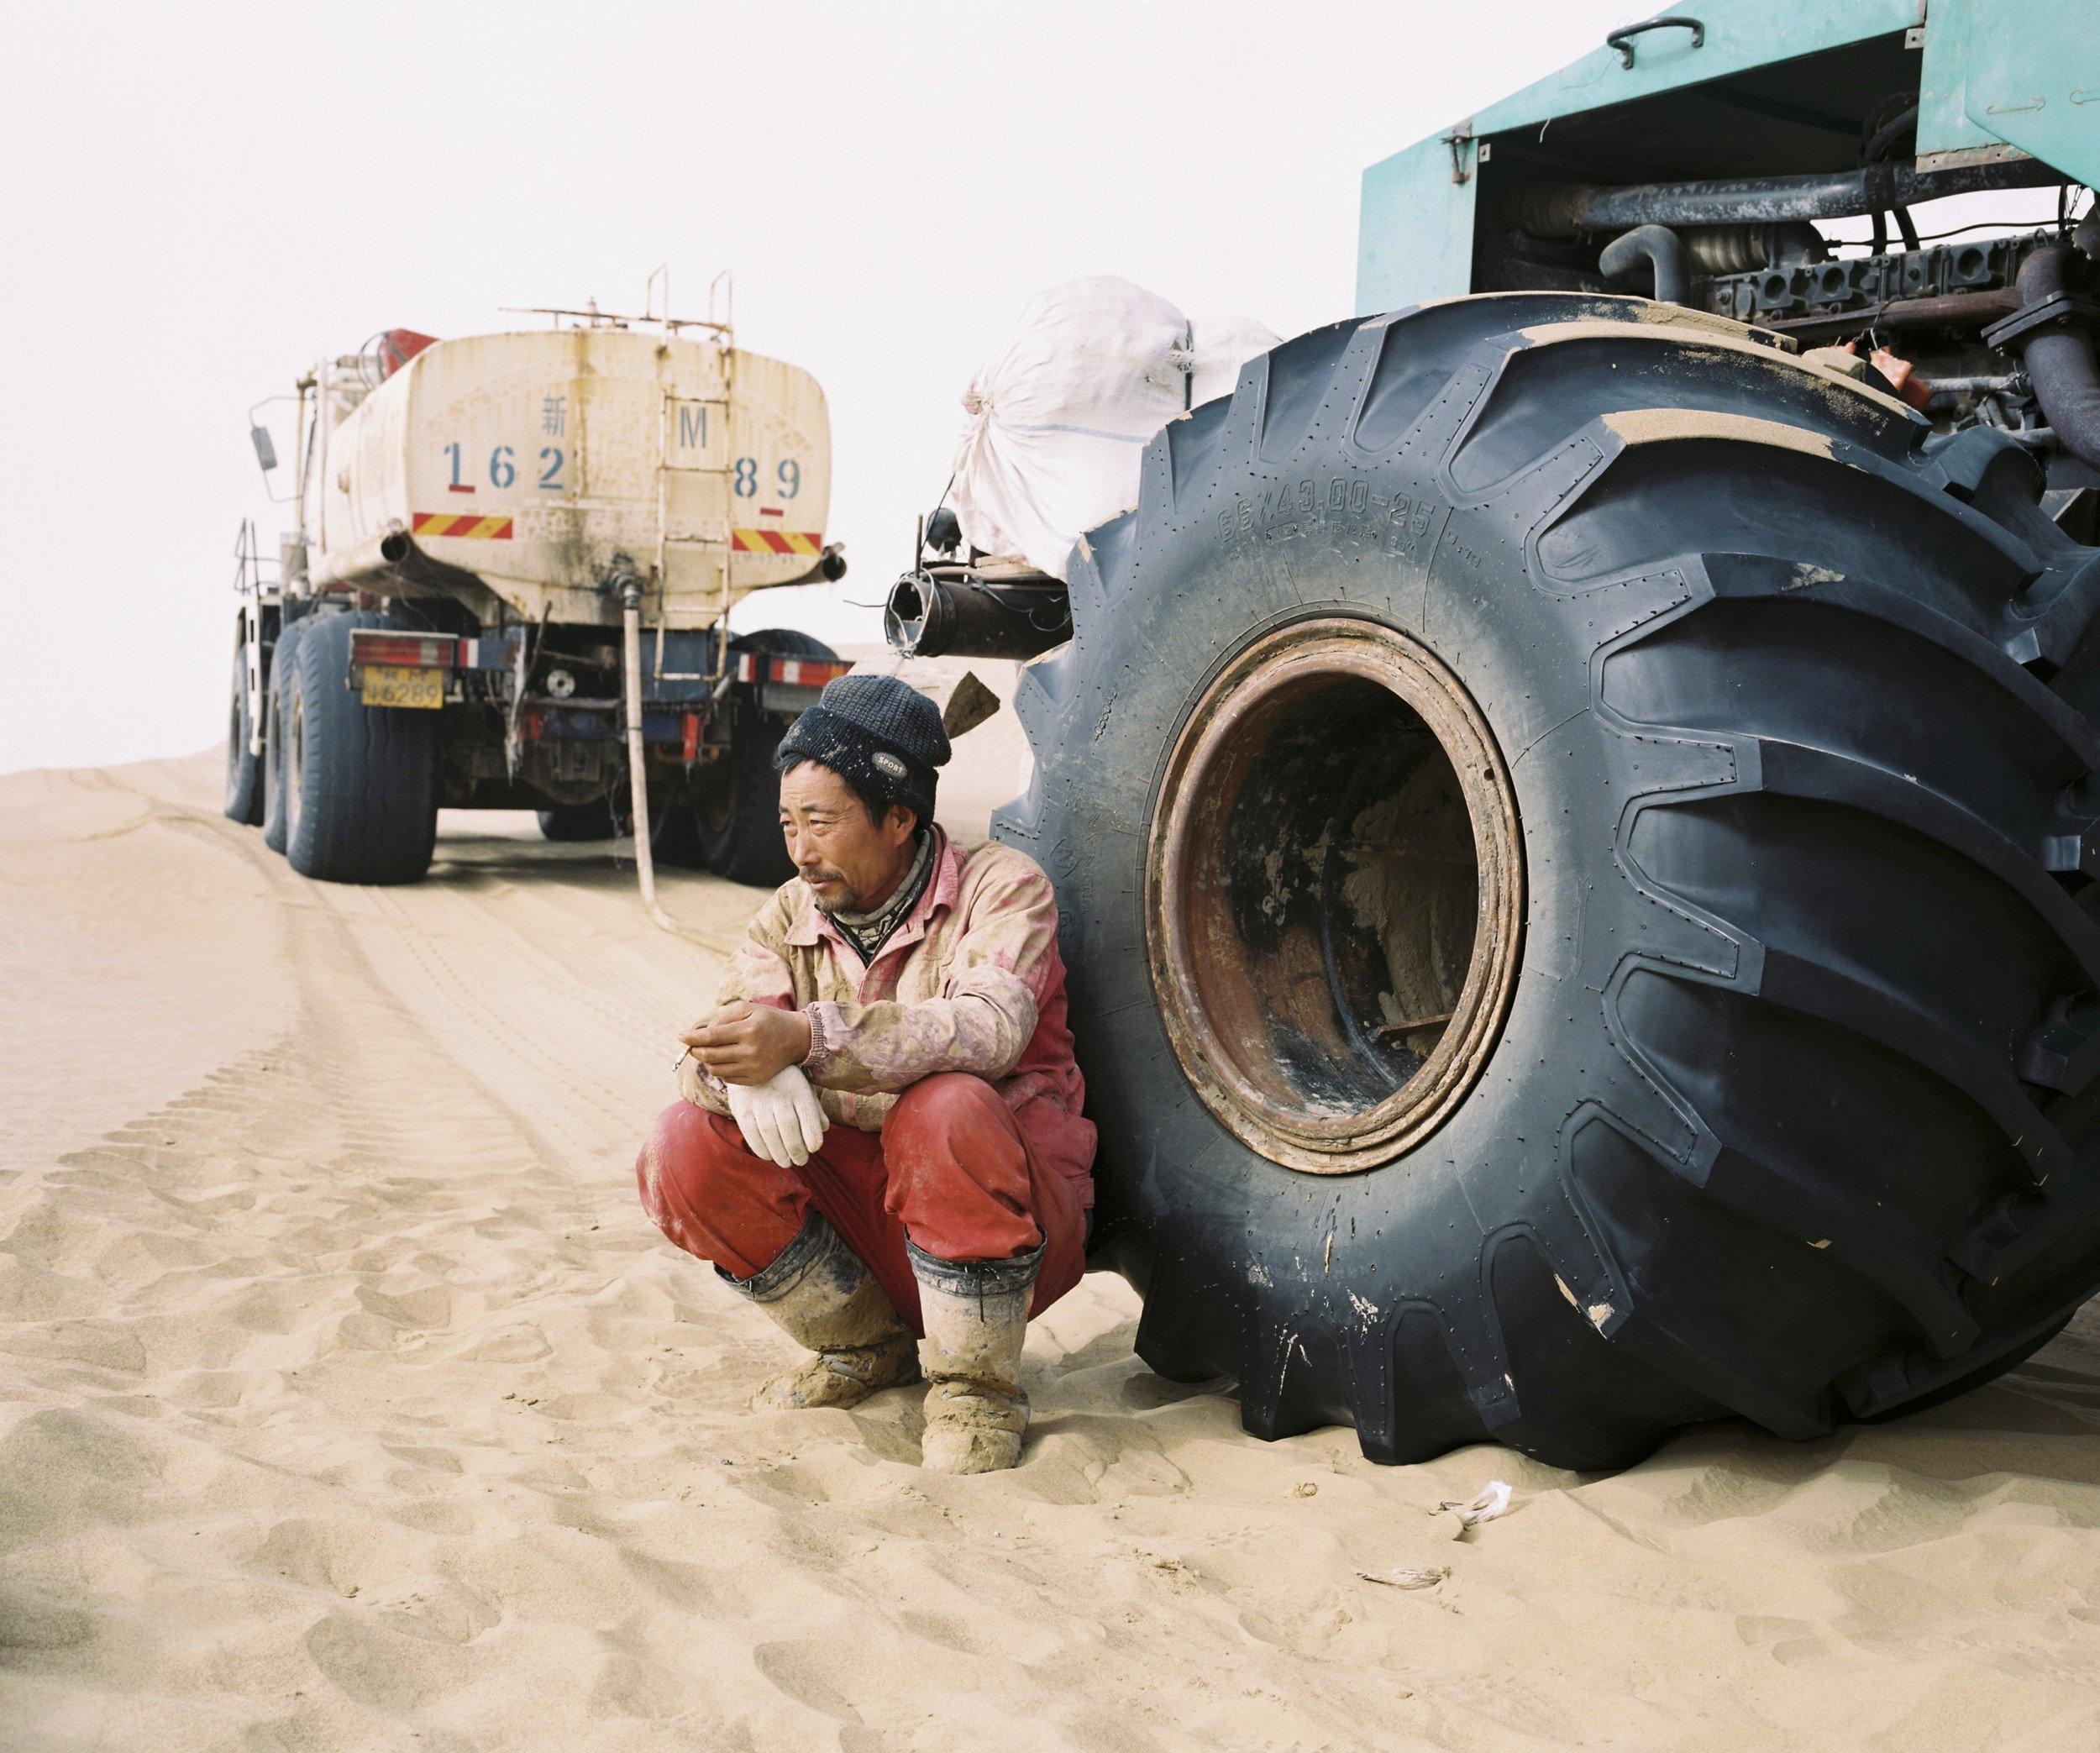 "December 2016. Xinjiang province, China. Senior technician from a Chinese state-owned oil company taking a cigarette break after lunch near one of the team's vehicle.  He is part of an oil exploration team from a Chinese state-owned company operating in the Taklamakan desert in the province of Xinjiang. This team and a few others are setting up thousands of explosive charges for weeks at a time that are all detonated at sthe same time to detect oil fields. Company is CNPC, China National Petroleum Corporation.  Xinjiang is the westernmost province in all China, located at the border of Central Asian countries, Russia and Mongolia. More than twice the size of France, it has only 22 million inhabitants, a majority of which are the indigenous Uighurs, a sunni-muslim Turkic ethnic group which has lived in the region for centuries. Tensions have nonetheless arisen in the last decade as a consequence of the en-masse migration of Han Chinese settlers and confessional persecution by the strongly secular governmental authorities.  Borrowing from romanticized notions of the American frontier, synonymous with ideals of exploration and expansion, photographer Patrick Wack captures a visual narrative of China's westernmost region—Xinjiang. Whereas the American West conjures images of cowboys and pioneers, of manifest destiny and individualistic freedom, the Chinese West has not yet been so defined. It is a place of pluralities—of haunting, expansive landscapes, of rough mountains and vivid lakes, of new construction and oil fields, of abandoned structures in decaying towns, of devout faith and calls to prayer, of silence and maligned minorities, of opportunity and uncertain futures. It is a land of shifting identity. In essence, Xinjiang is the new frontier to be conquered and pondered. Literally translating to ""new frontier"" in Chinese, Xinjiang is a land apart, and has been so for centuries. More than twice the land area of France with a population less than the city of Shanghai, the Chinese province of Xinjiang once connected China to Central Asia and Europe as the first leg of the ancient Silk Road. Yet it remains physically, culturally, and politically distinct, an otherness within modern China. Its infinite sense of space; its flowing Arabic scripts and mosque-filled cityscapes; its designation as an autonomous region; and simmering beneath, its uneasy relationship with the encroaching, imposing, surveilling East. For China's ethnic Han majority, Xinjiang is once again the new frontier, to be awakened for Beijing's new Silk Road—China's own manifest destiny—with the promise of prosperity in its plentiful oil fields. For Patrick Wack, Out West is as a much a story of the region as it is his own, as much a documentation of a contemporary and historical place as it is an emotional journey of what it means to strive, and for what. There exists an inherent fascination in the region—as both key and foil to the new China—and a siren's call to its vast limitlessness that instinctively incites introspection and desire. Showcasing a romanticism of the frontier, Out West presents Xinjiang via the lens of its present day, in photography that speaks of the surrealistic tranquility—and disquiet—of the unknown. Out West offers an experience of Xinjiang that highlights its estrangement from contemporary perceptions of the new China, accentuating undercurrents of tension and the mystique it has cultivated—whether in their minds or ours. At its core, Out West is a question of perspective: What is the West but the East to another?  Xinjiang is the westernmost province in all China, located at the border of Central Asian countries, Russia and Mongolia. More than twice the size of France, it has only 22 million inhabitants, a majority of which are the indigenous Uighurs, a sunni-muslim Turkic ethnic group which has lived in the region for centuries. Tensions have nonetheless arisen in the last decade as a consequence of the en-masse migration of Han Chinese settlers and confessional persecution by the strongly secular governmental authorities.  Borrowing from romanticized notions of the American frontier, synonymous with ideals of exploration and expansion, photographer Patrick Wack captures a visual narrative of China's westernmost region—Xinjiang. Whereas the American West conjures images of cowboys and pioneers, of manifest destiny and individualistic freedom, the Chinese West has not yet been so defined. It is a place of pluralities—of haunting, expansive landscapes, of rough mountains and vivid lakes, of new construction and oil fields, of abandoned structures in decaying towns, of devout faith and calls to prayer, of silence and maligned minorities, of opportunity and uncertain futures. It is a land of shifting identity. In essence, Xinjiang is the new frontier to be conquered and pondered. Literally translating to ""new frontier"" in Chinese, Xinjiang is a land apart, and has been so for centuries. More than twice the land area of France with a population less than the city of Shanghai, the Chinese province of Xinjiang once connected China to Central Asia and Europe as the first leg of the ancient Silk Road. Yet it remains physically, culturally, and politically distinct, an otherness within modern China. Its infinite sense of space; its flowing Arabic scripts and mosque-filled cityscapes; its designation as an autonomous region; and simmering beneath, its uneasy relationship with the encroaching, imposing, surveilling East. For China's ethnic Han majority, Xinjiang is once again the new frontier, to be awakened for Beijing's new Silk Road—China's own manifest destiny—with the promise of prosperity in its plentiful oil fields. For Patrick Wack, Out West is as a much a story of the region as it is his own, as much a documentation of a contemporary and historical place as it is an emotional journey of what it means to strive, and for what. There exists an inherent fascination in the region—as both key and foil to the new China—and a siren's call to its vast limitlessness that instinctively incites introspection and desire. Showcasing a romanticism of the frontier, Out West presents Xinjiang via the lens of its present day, in photography that speaks of the surrealistic tranquility—and disquiet—of the unknown. Out West offers an experience of Xinjiang that highlights its estrangement from contemporary perceptions of the new China, accentuating undercurrents of tension and the mystique it has cultivated—whether in their minds or ours. At its core, Out West is a question of perspective: What is the West but the East to another?"